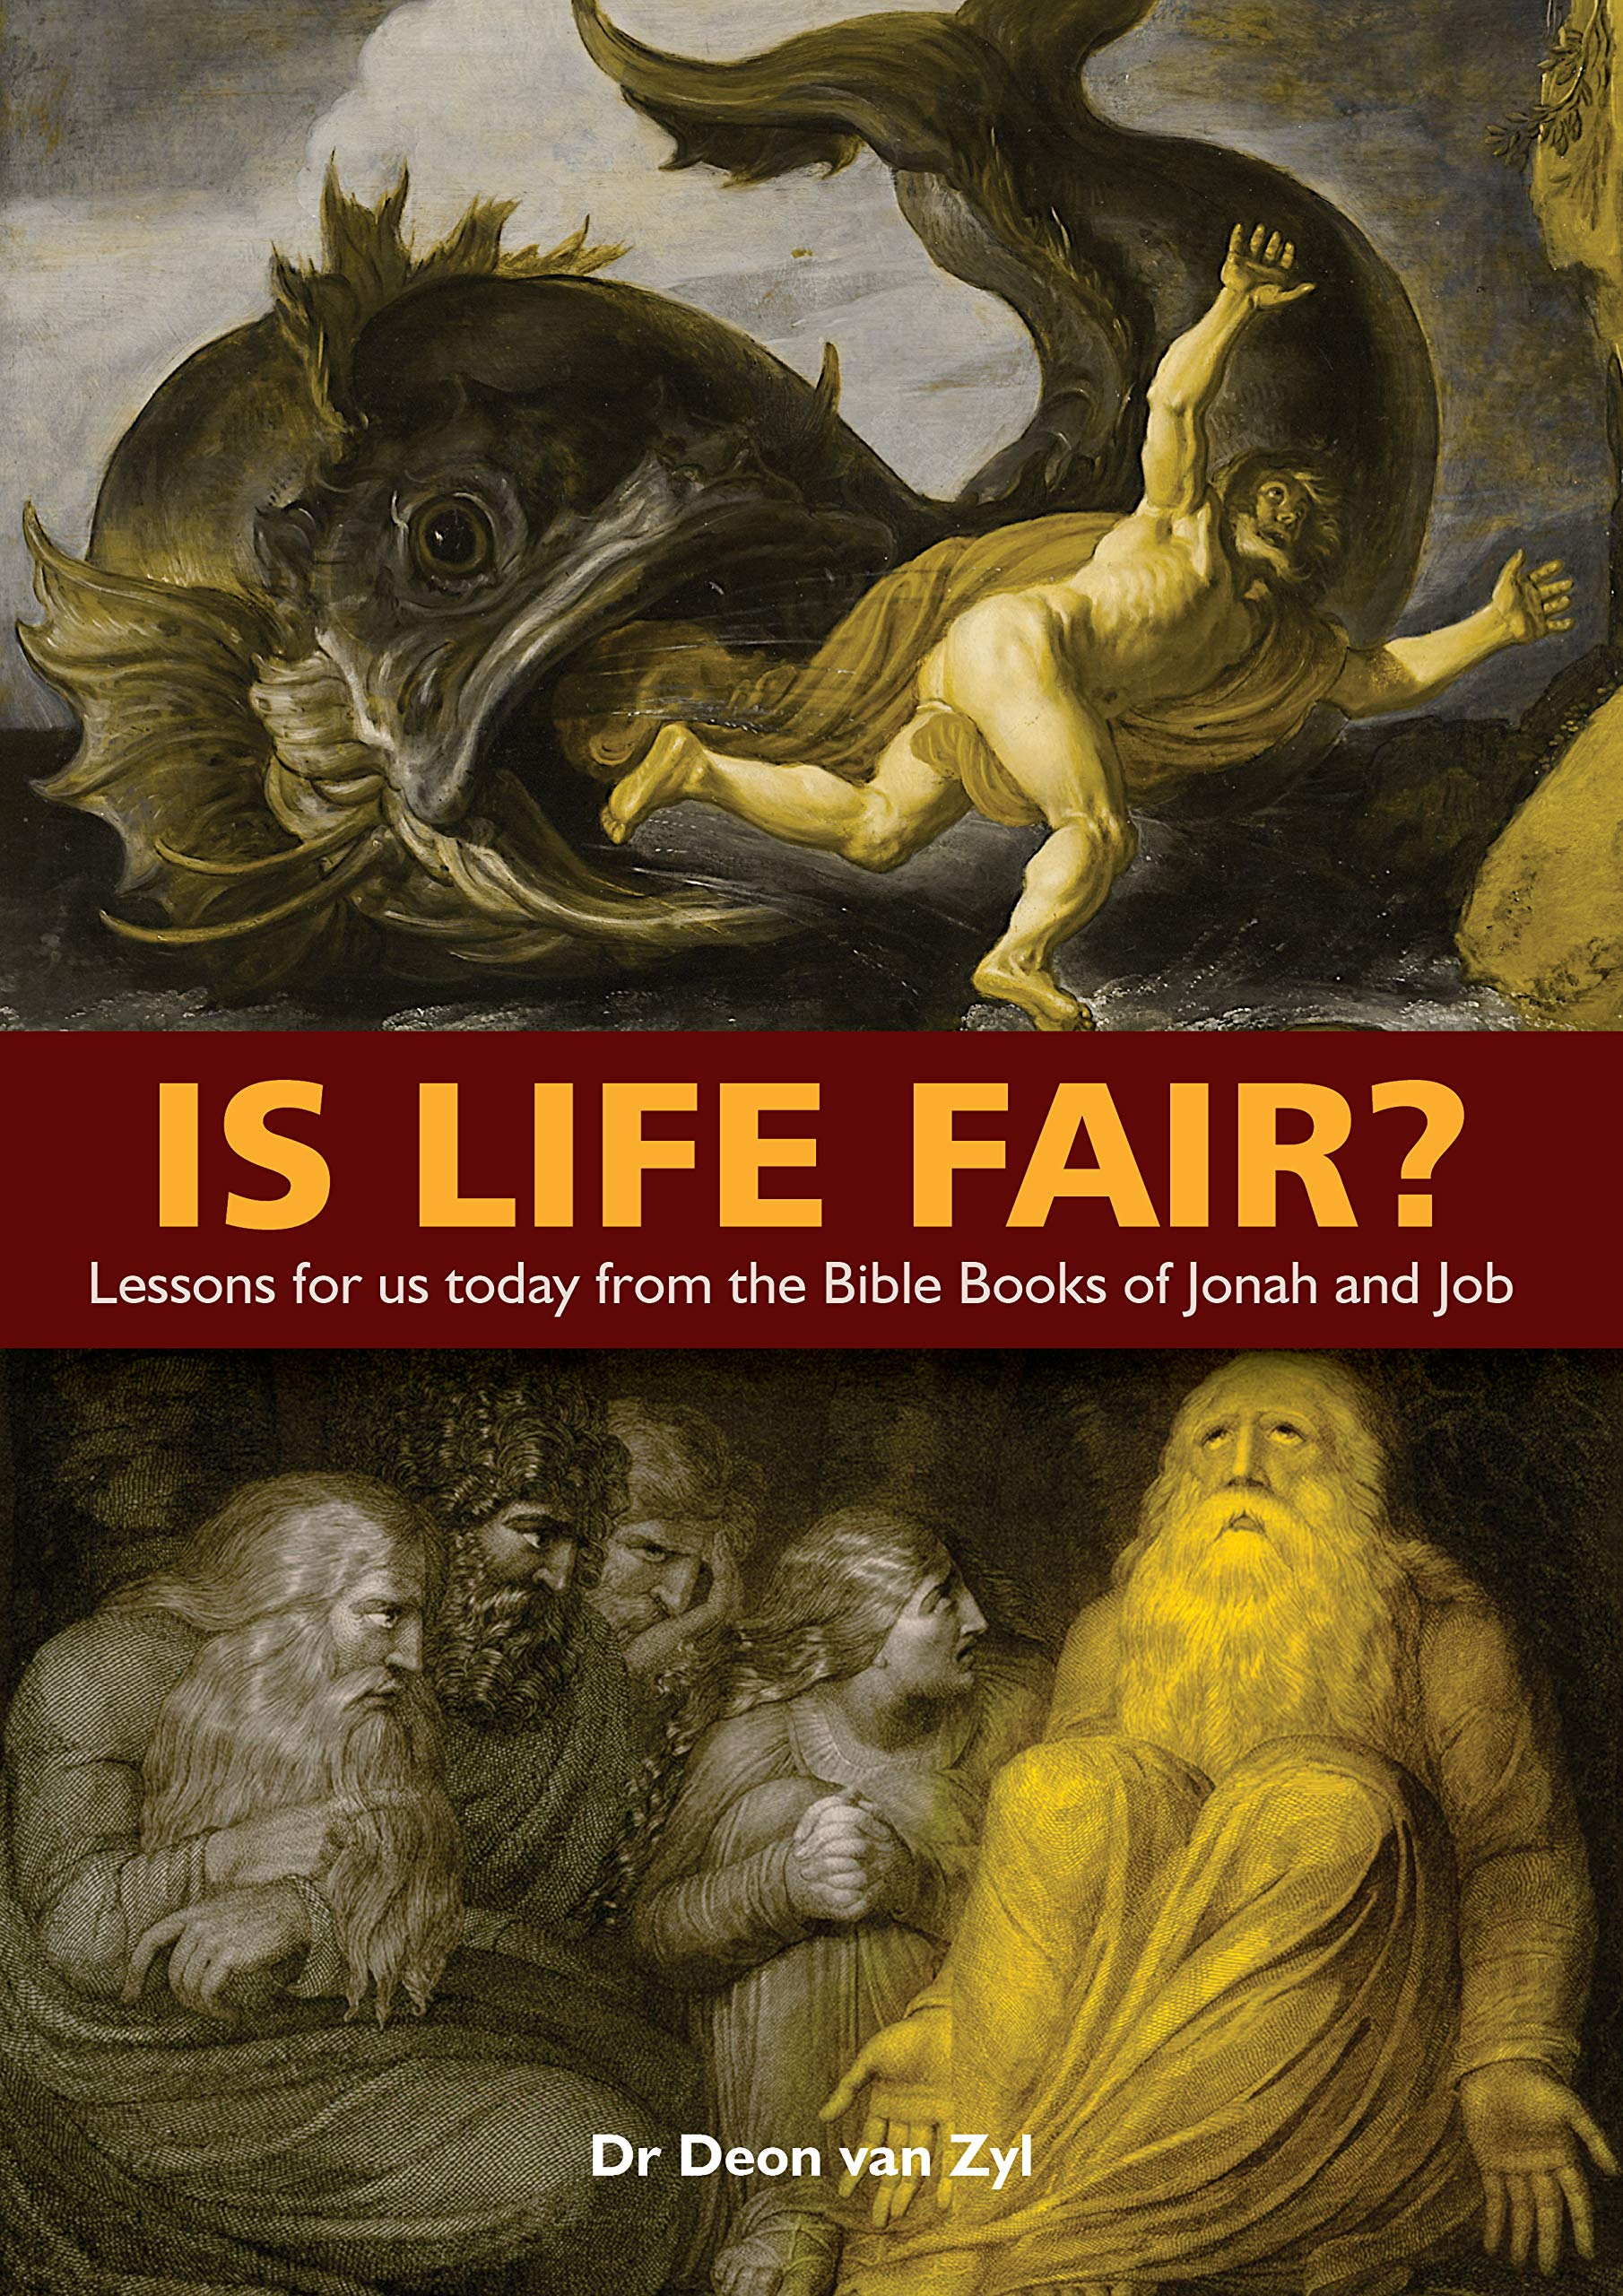 Is Life Fair?: Lessons for us today from the Bible Books of Jonah and Job